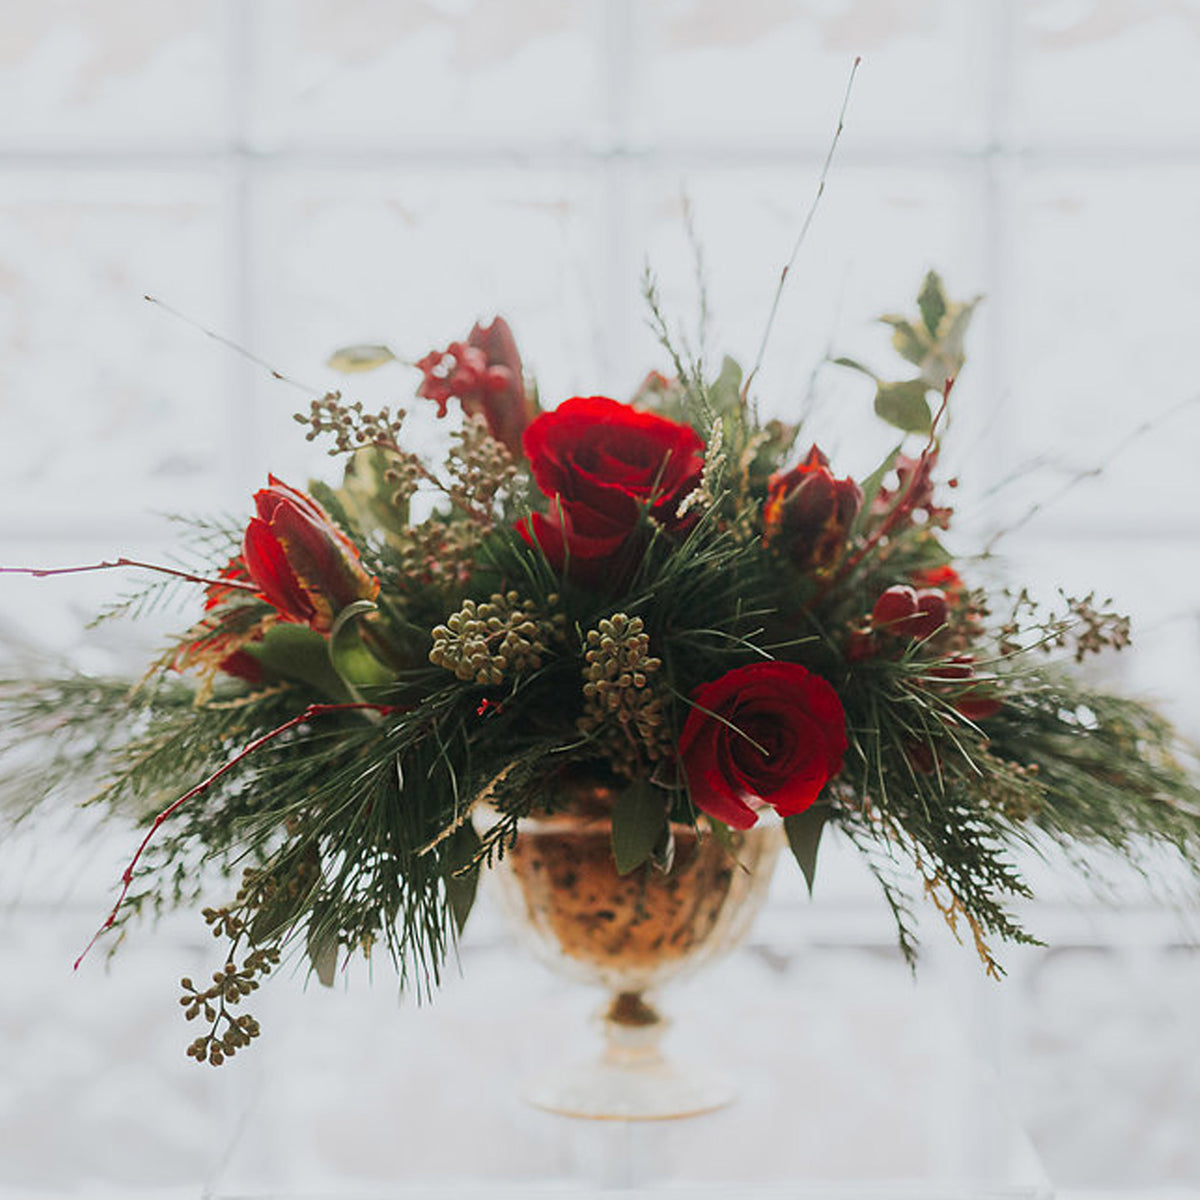 Floral Design Experience - A Holiday Centerpiece Workshop